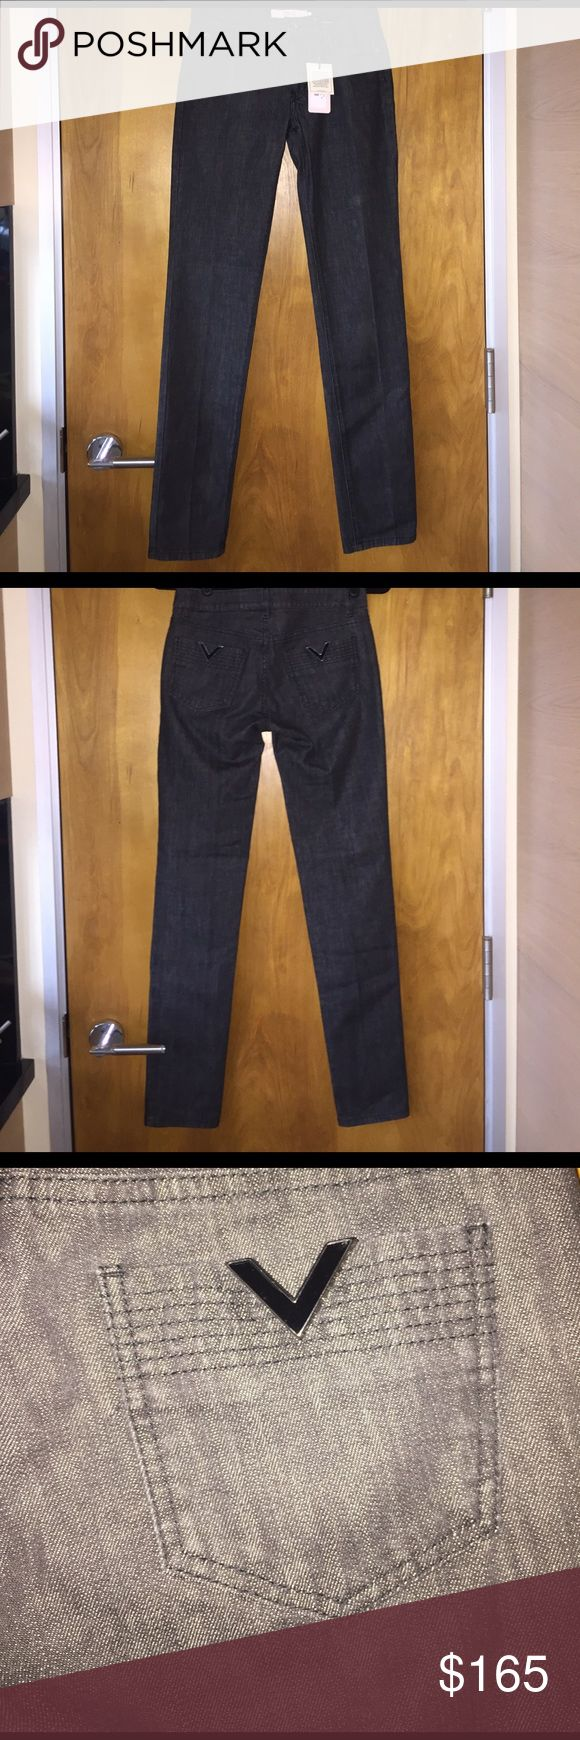 RED Valentino jeans In perfect condition! Washed black denim straight leg authentic RED Valentino jeans. RED Valentino Jeans Straight Leg